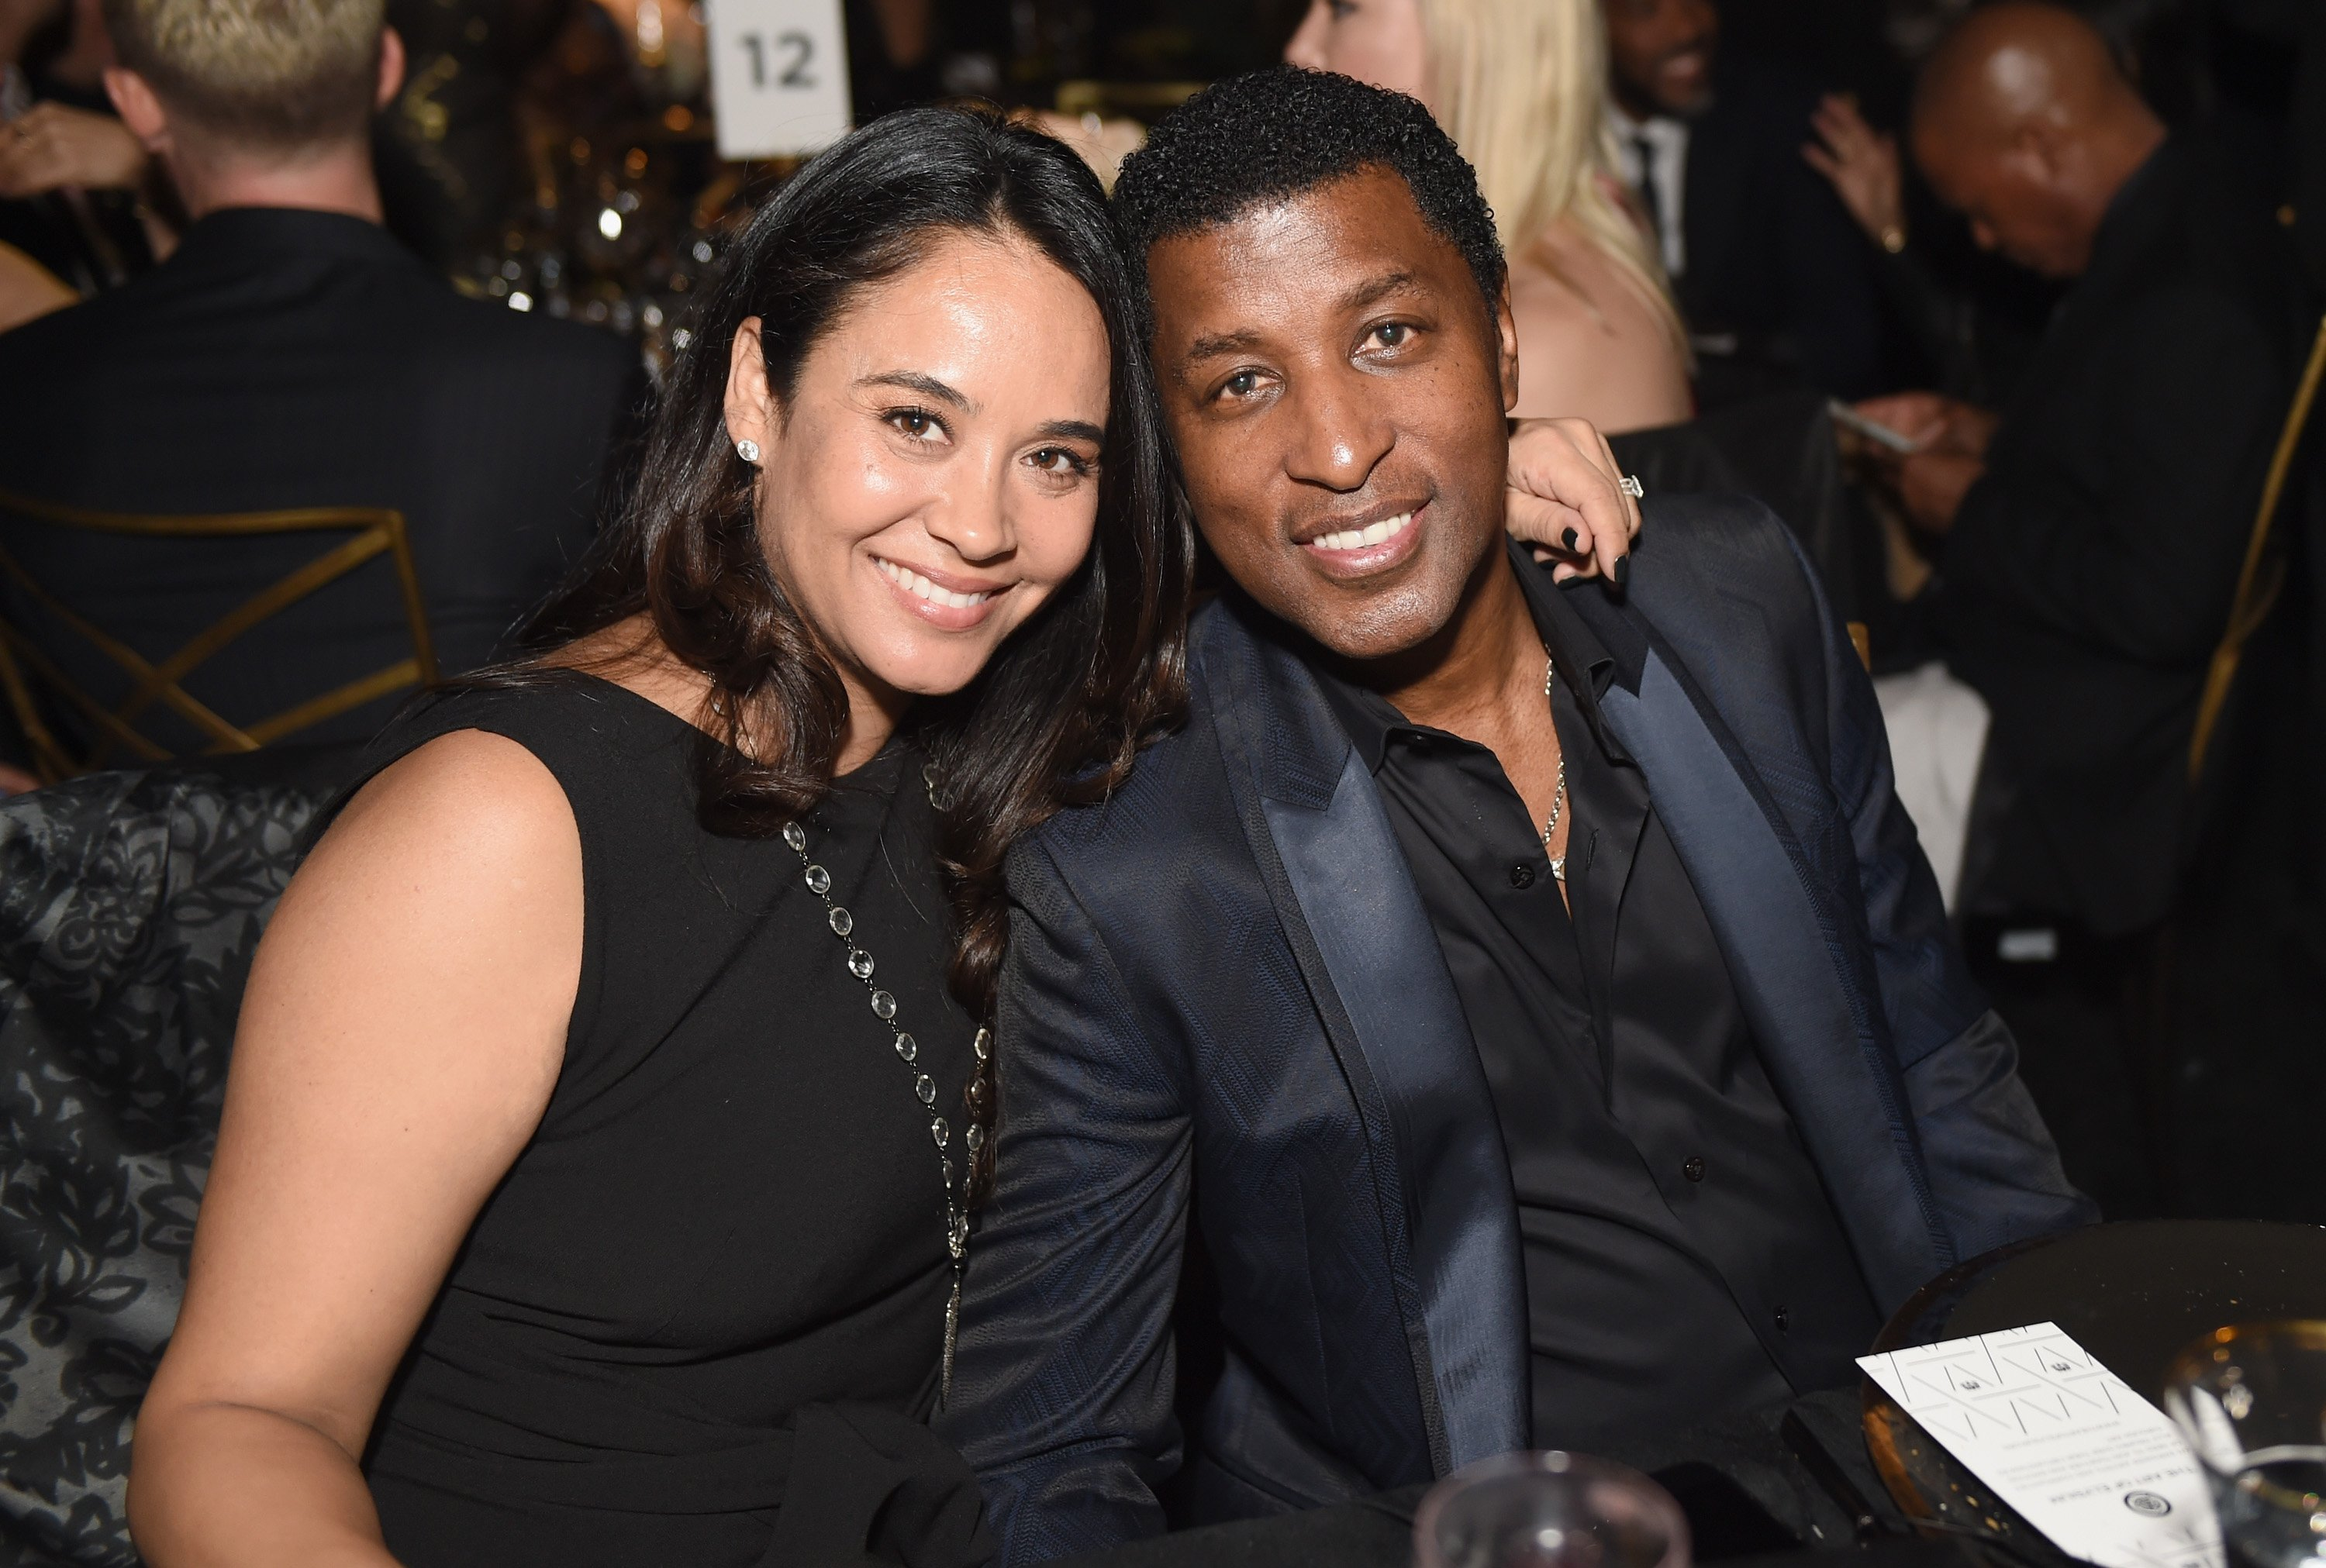 """Kenny """"Babyface"""" Edmonds with his wife, Nicole Patenburg at an event celebrating """"Stevie Wonder's HEAVEN"""" at The Art of Elysium in January 2017. 